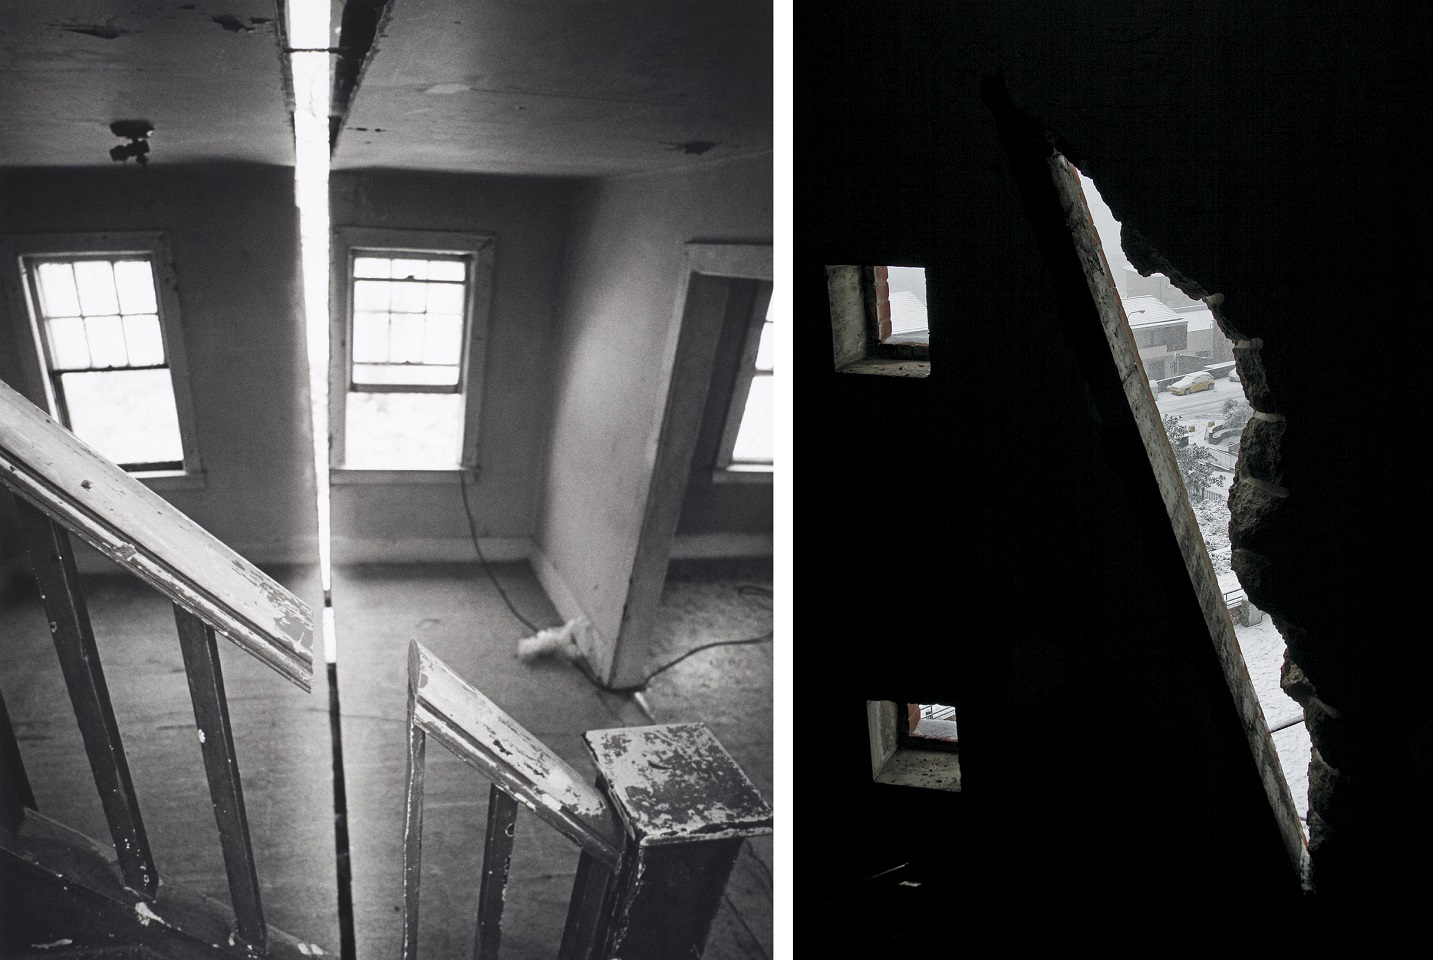 there are two black and white photos, on the left a basement and on the right the crack in a wall